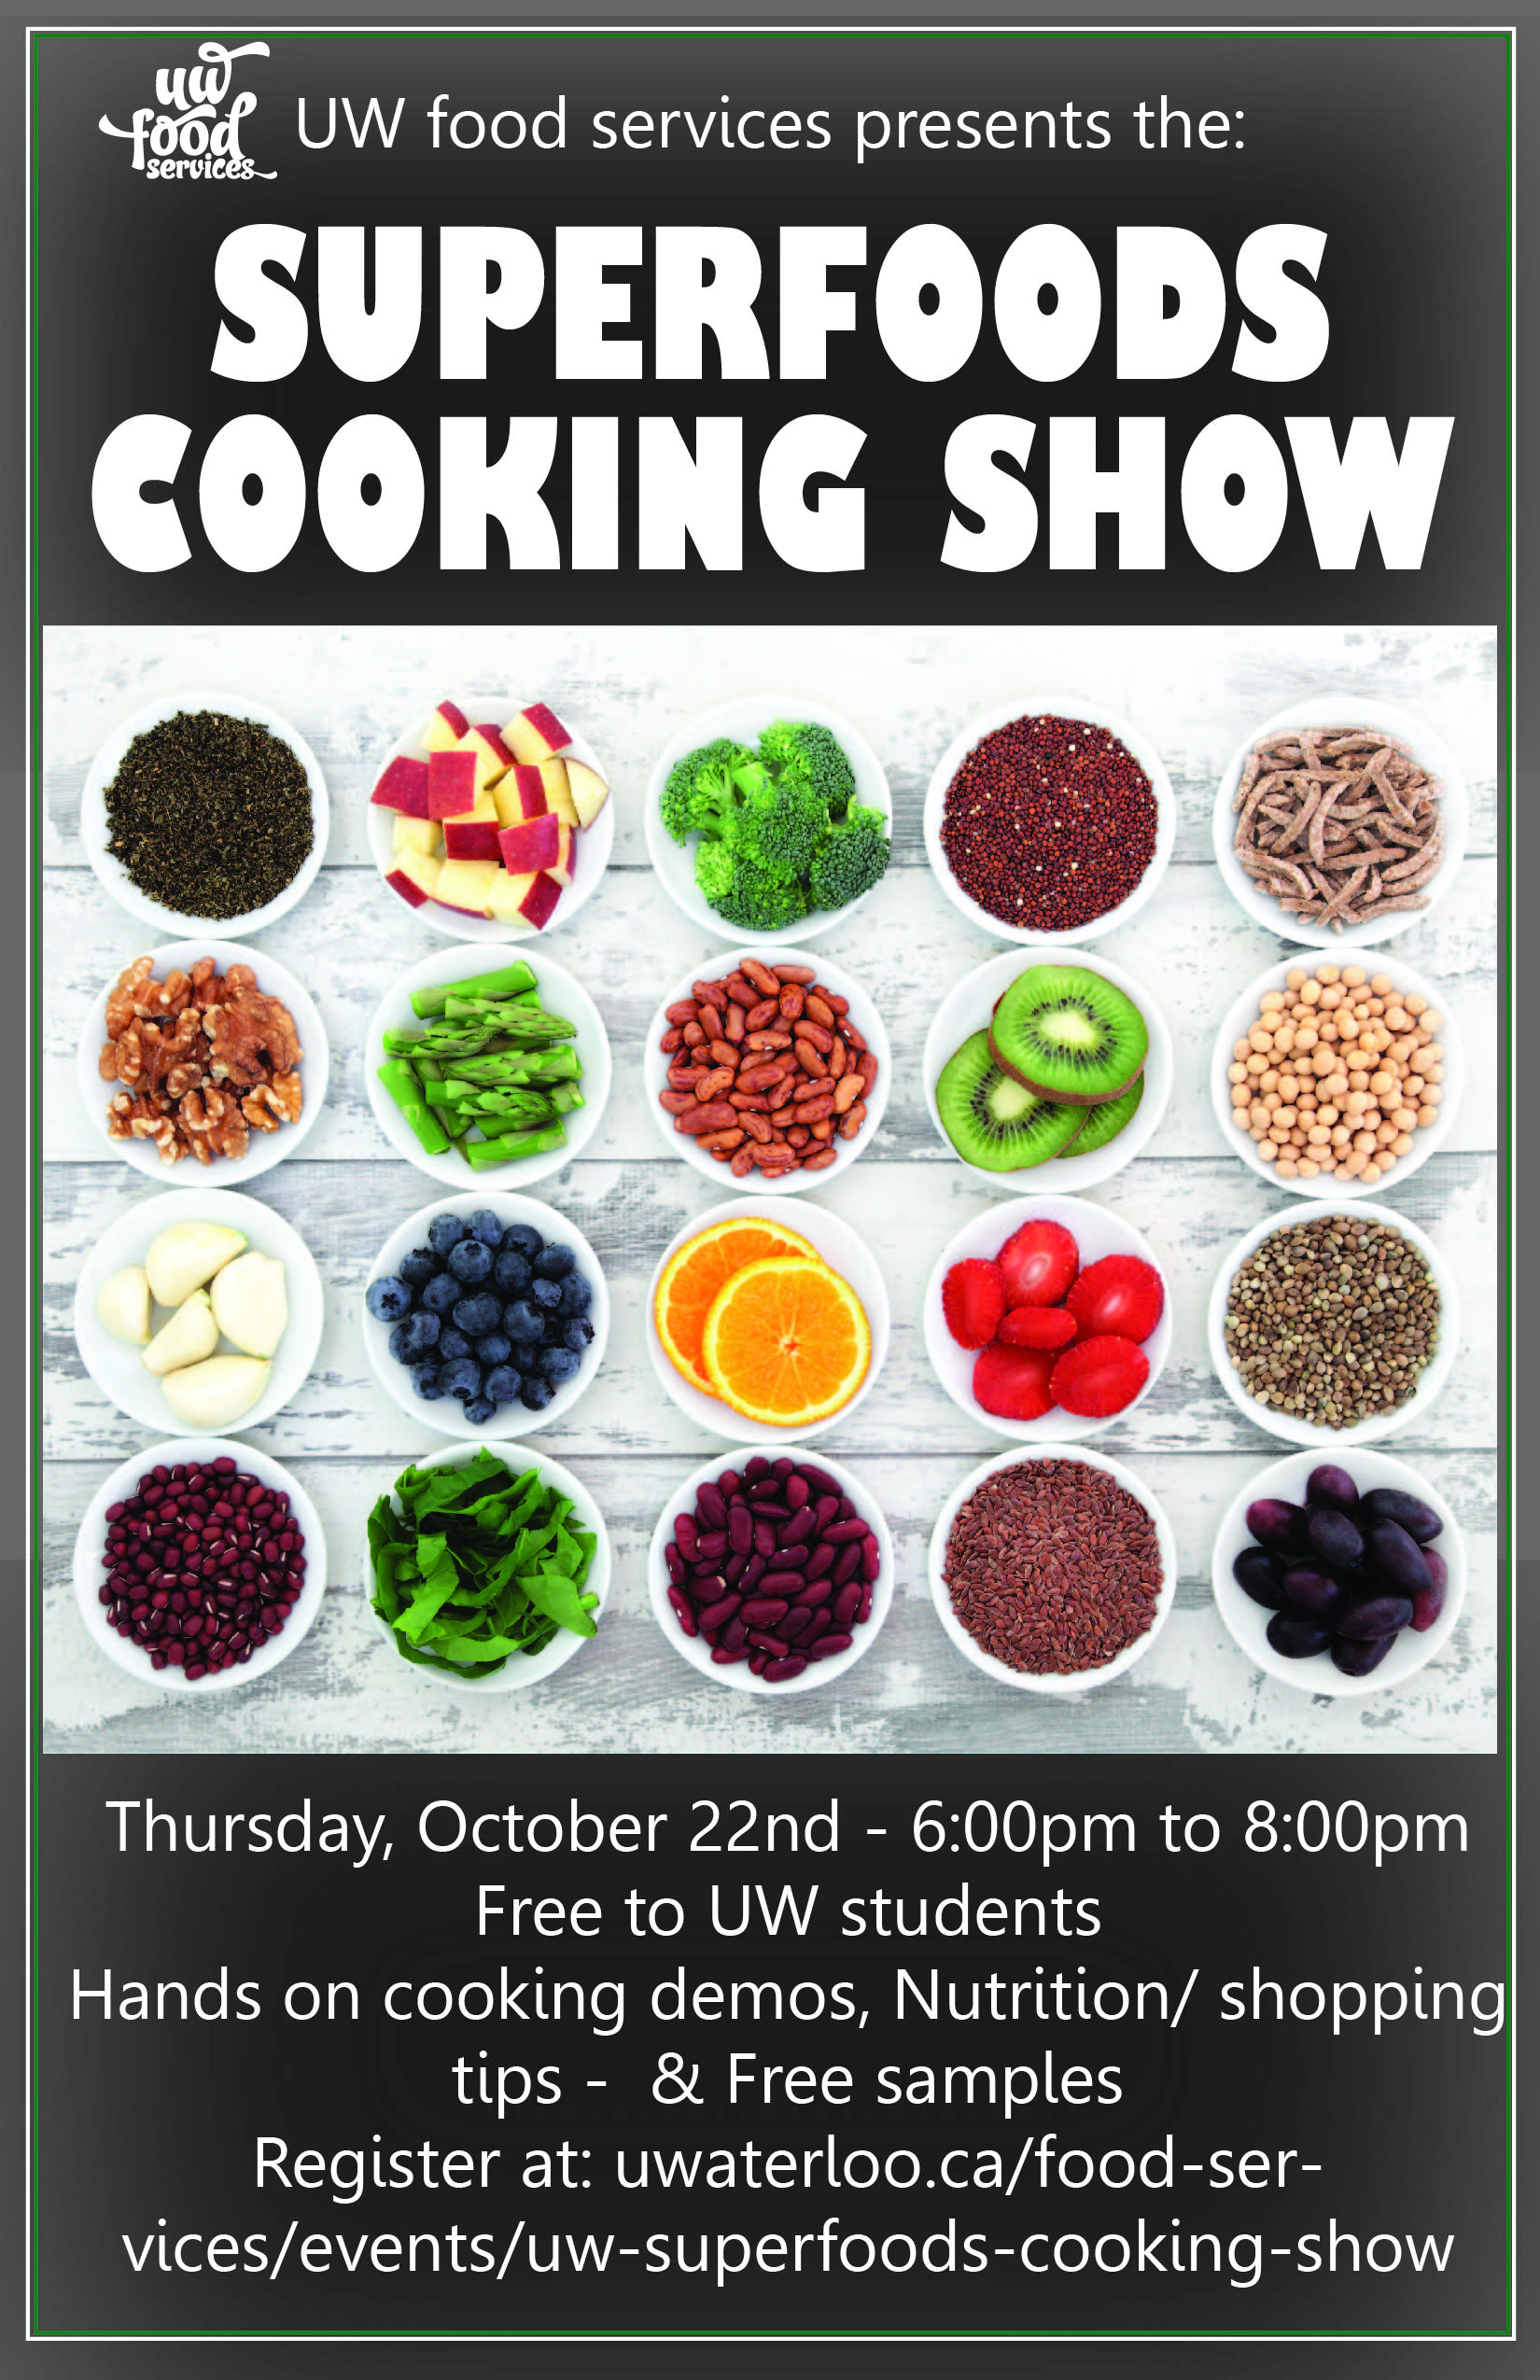 Thursday, October 22nd - 6:00pm to 8:00pm Free to UW students Hands on cooking demos, Nutrition/ shopping tips -  & Free samples